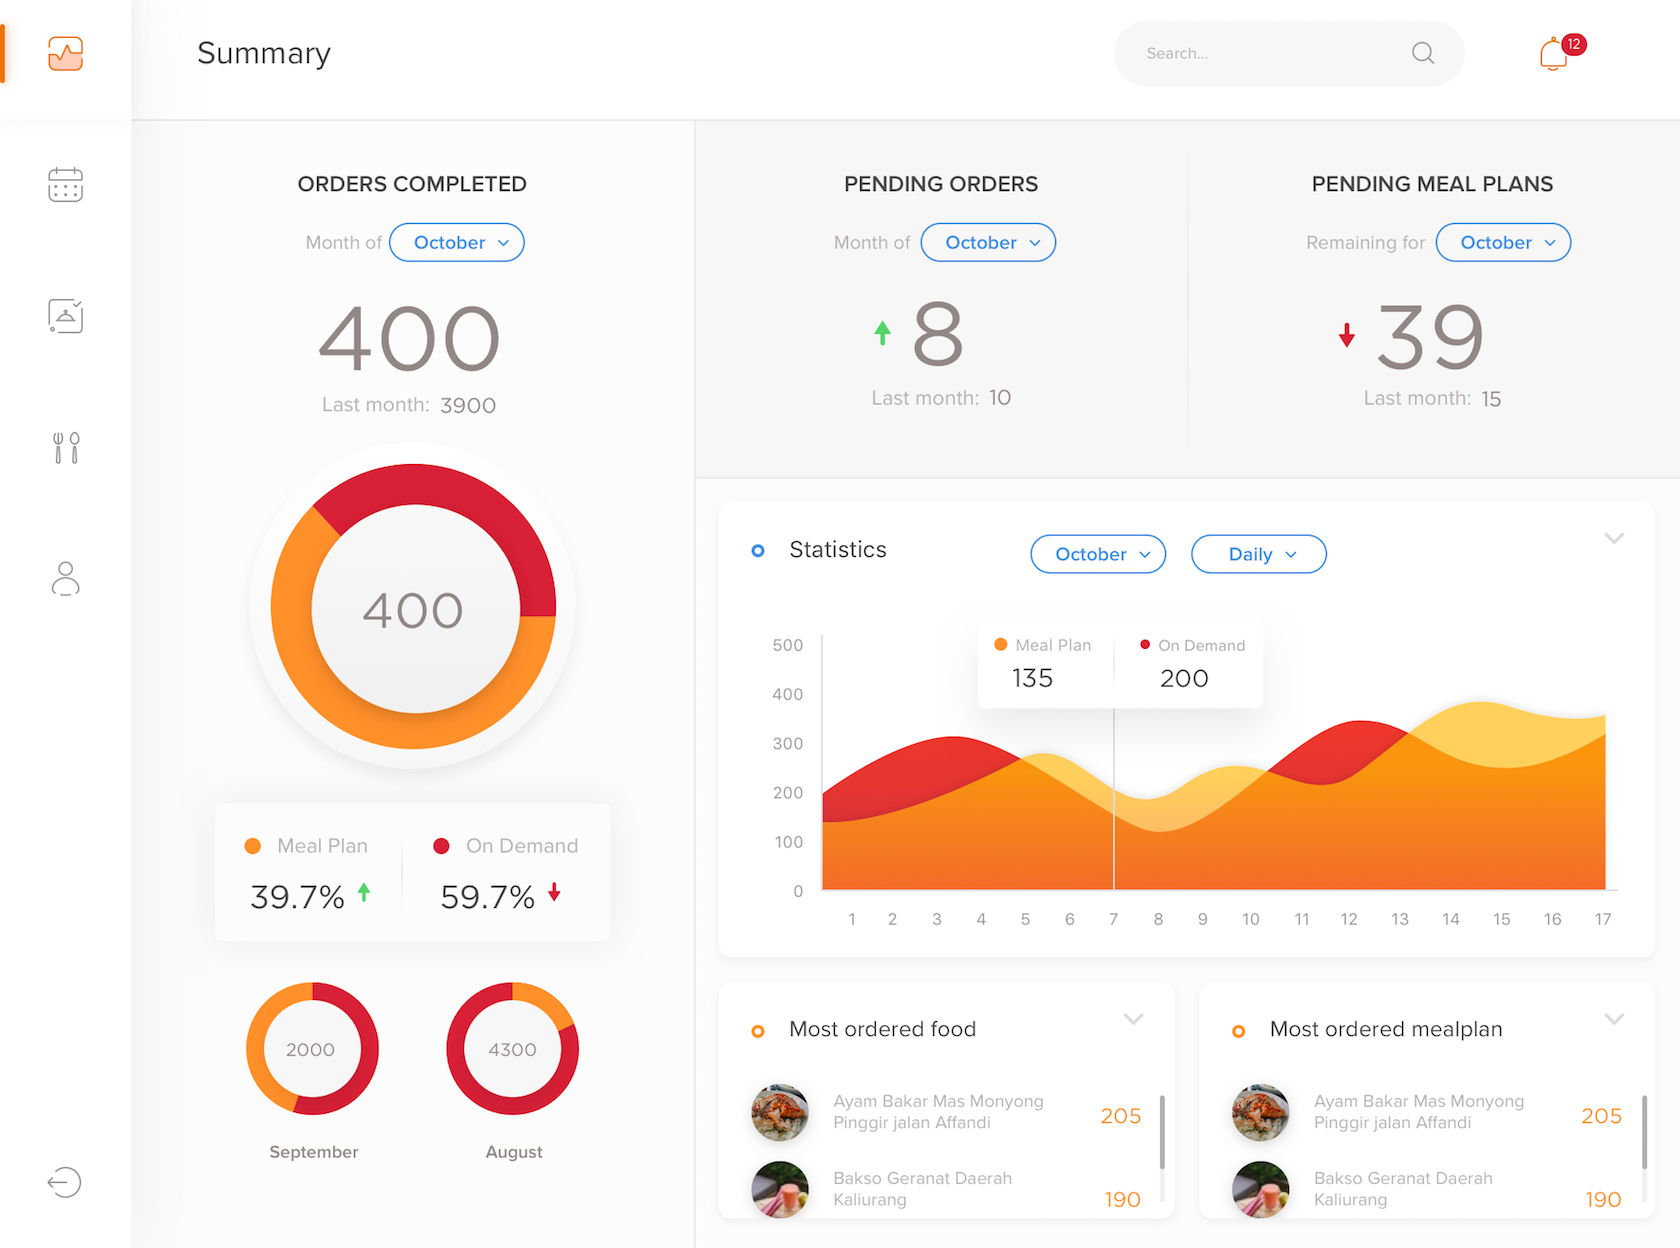 Presenting data visually can make dashboards easier to understand.